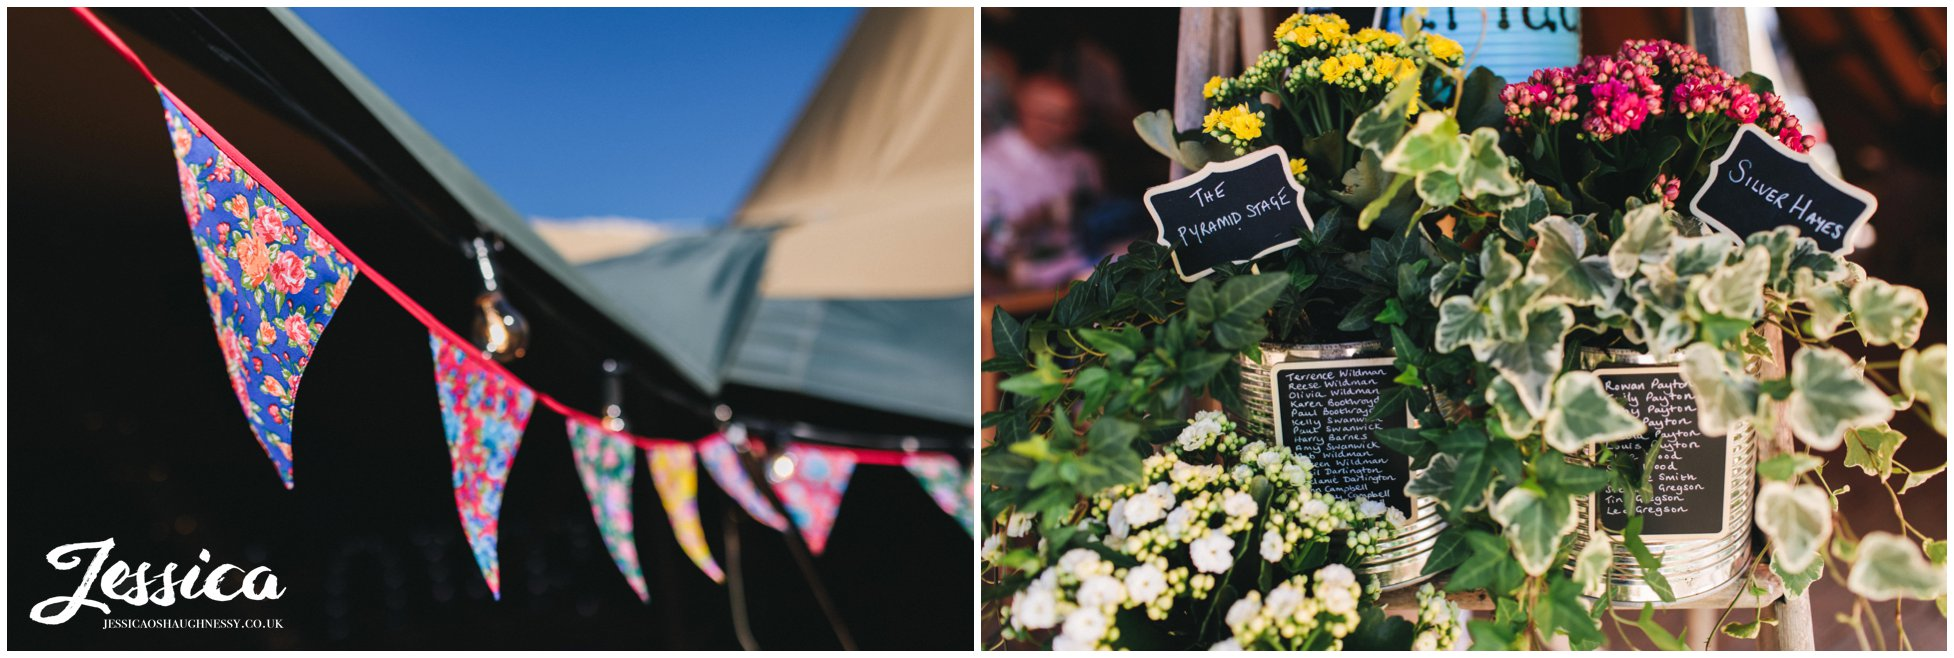 bunting & plants decorate the tipi at bach wen farm